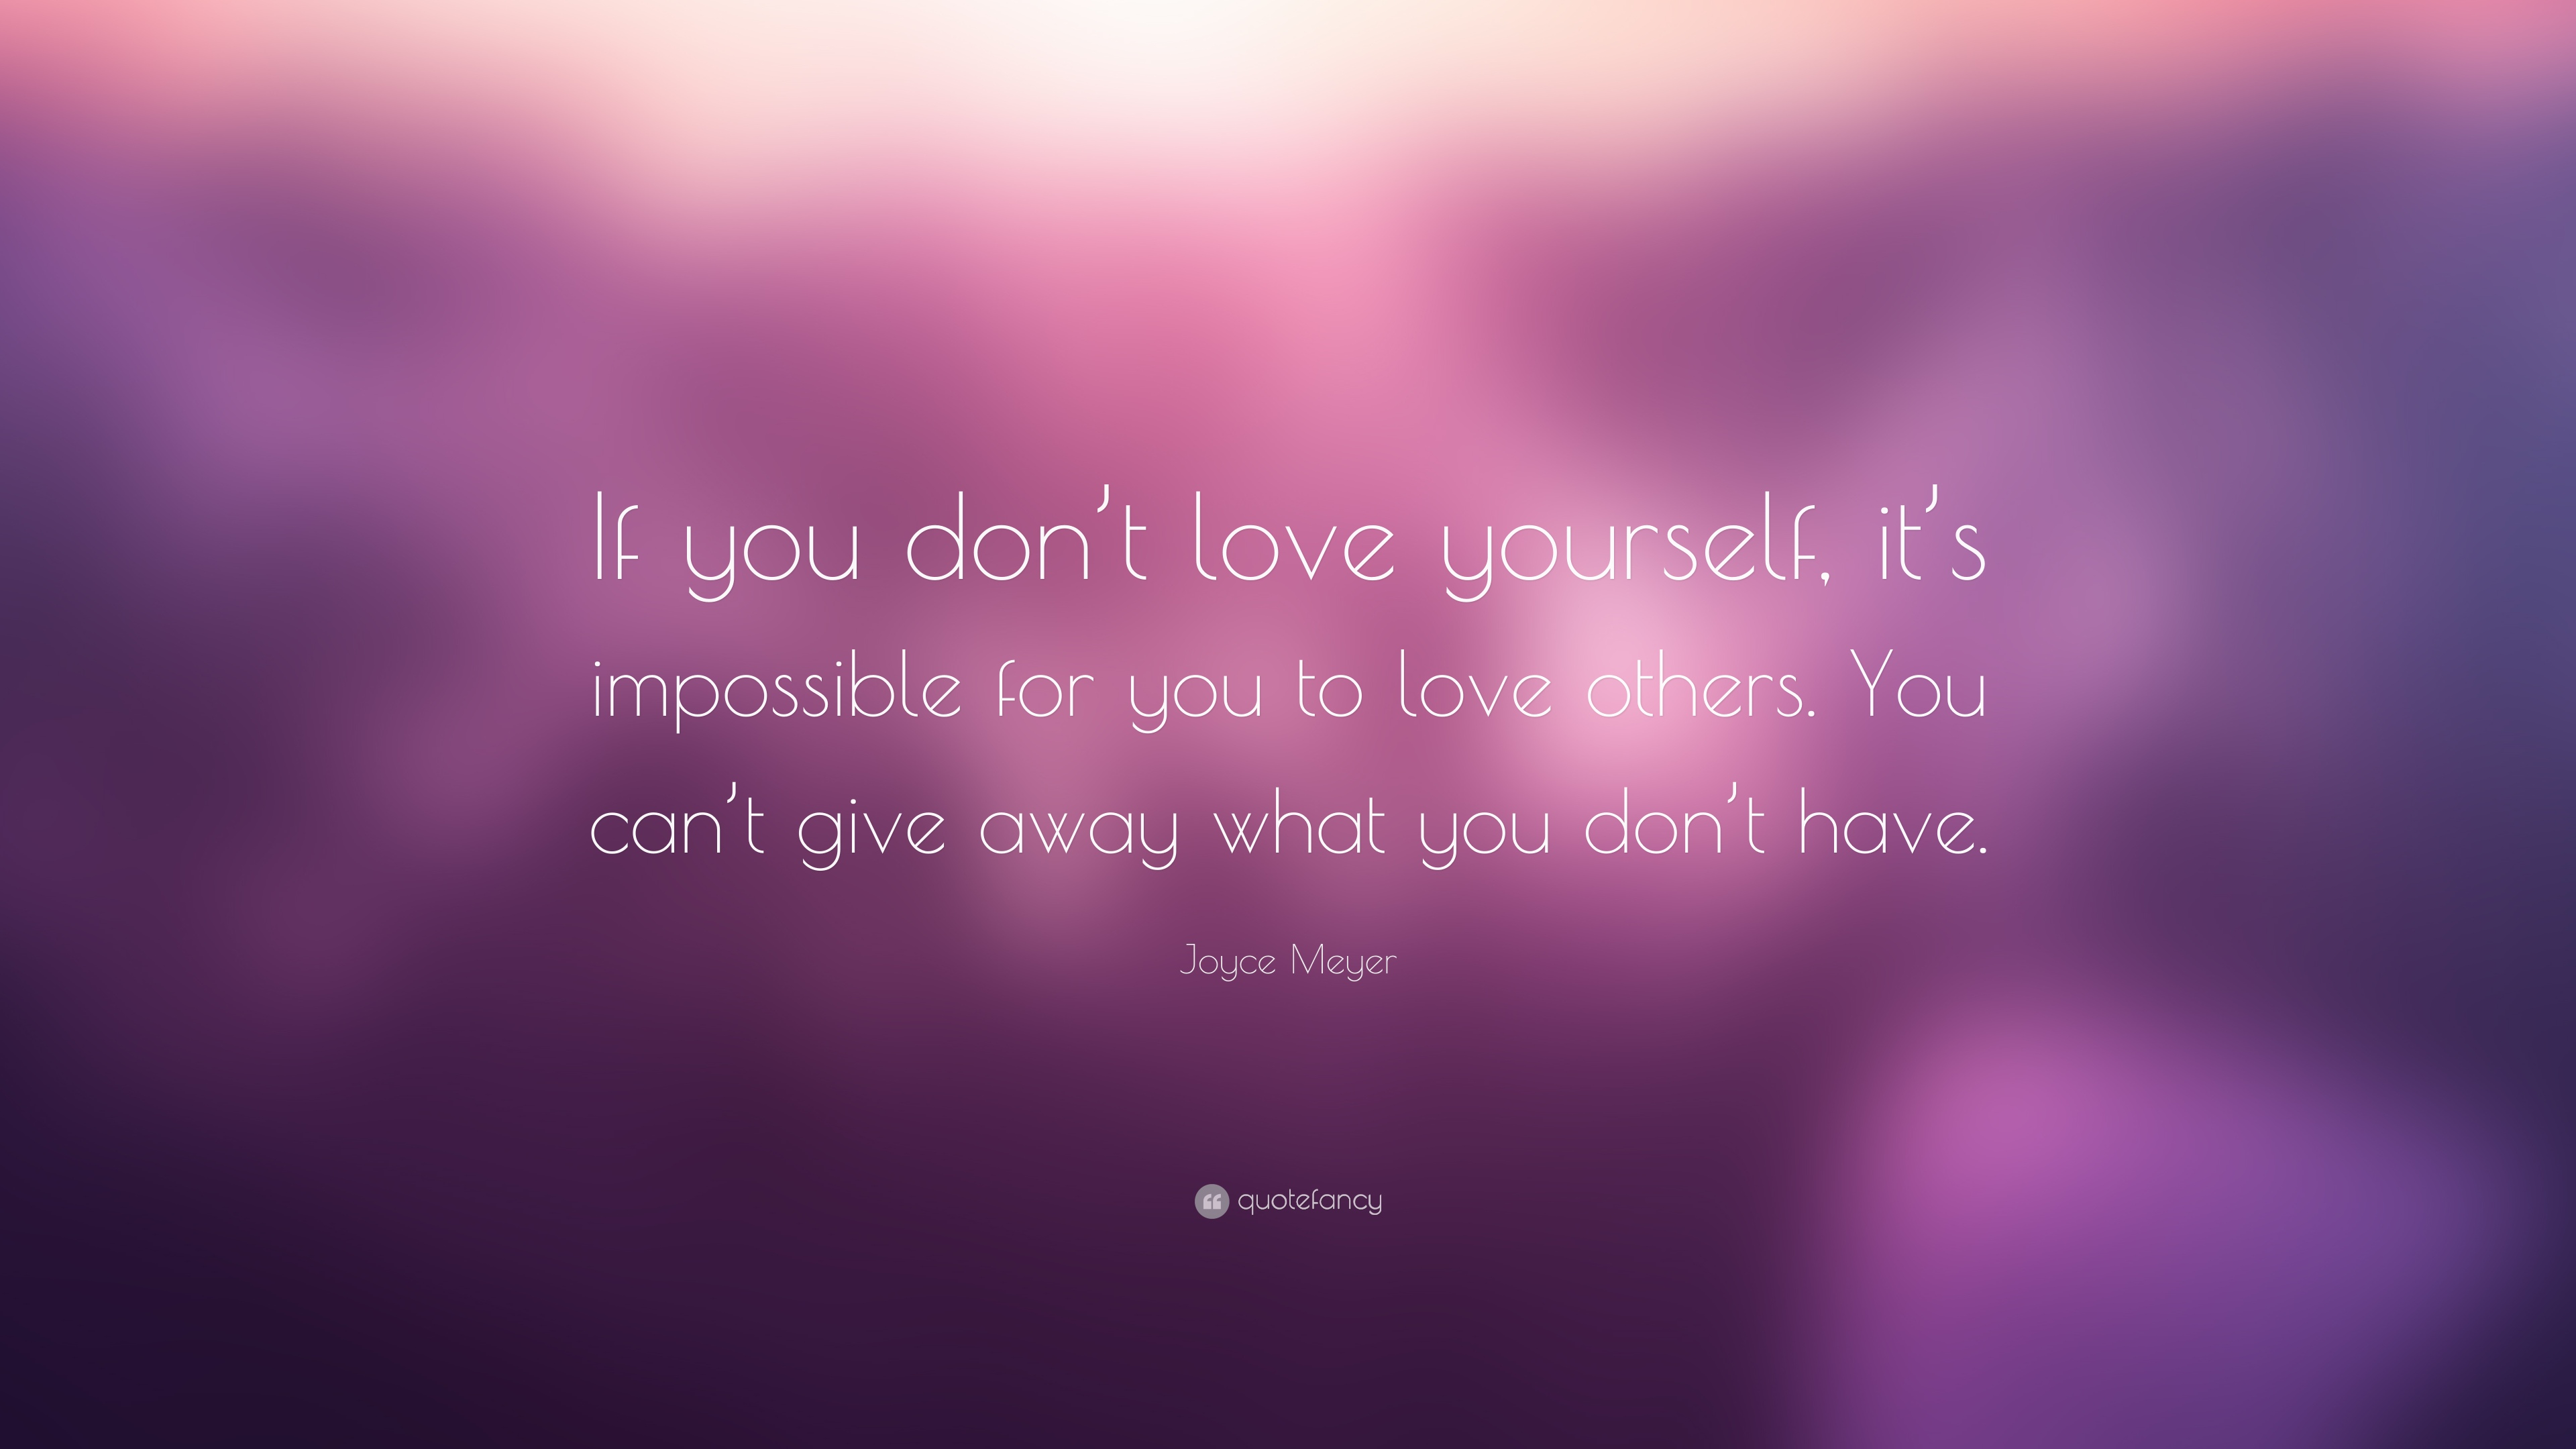 Joyce Meyer Quote: U201cIf You Donu0027t Love Yourself, Itu0027s Impossible For